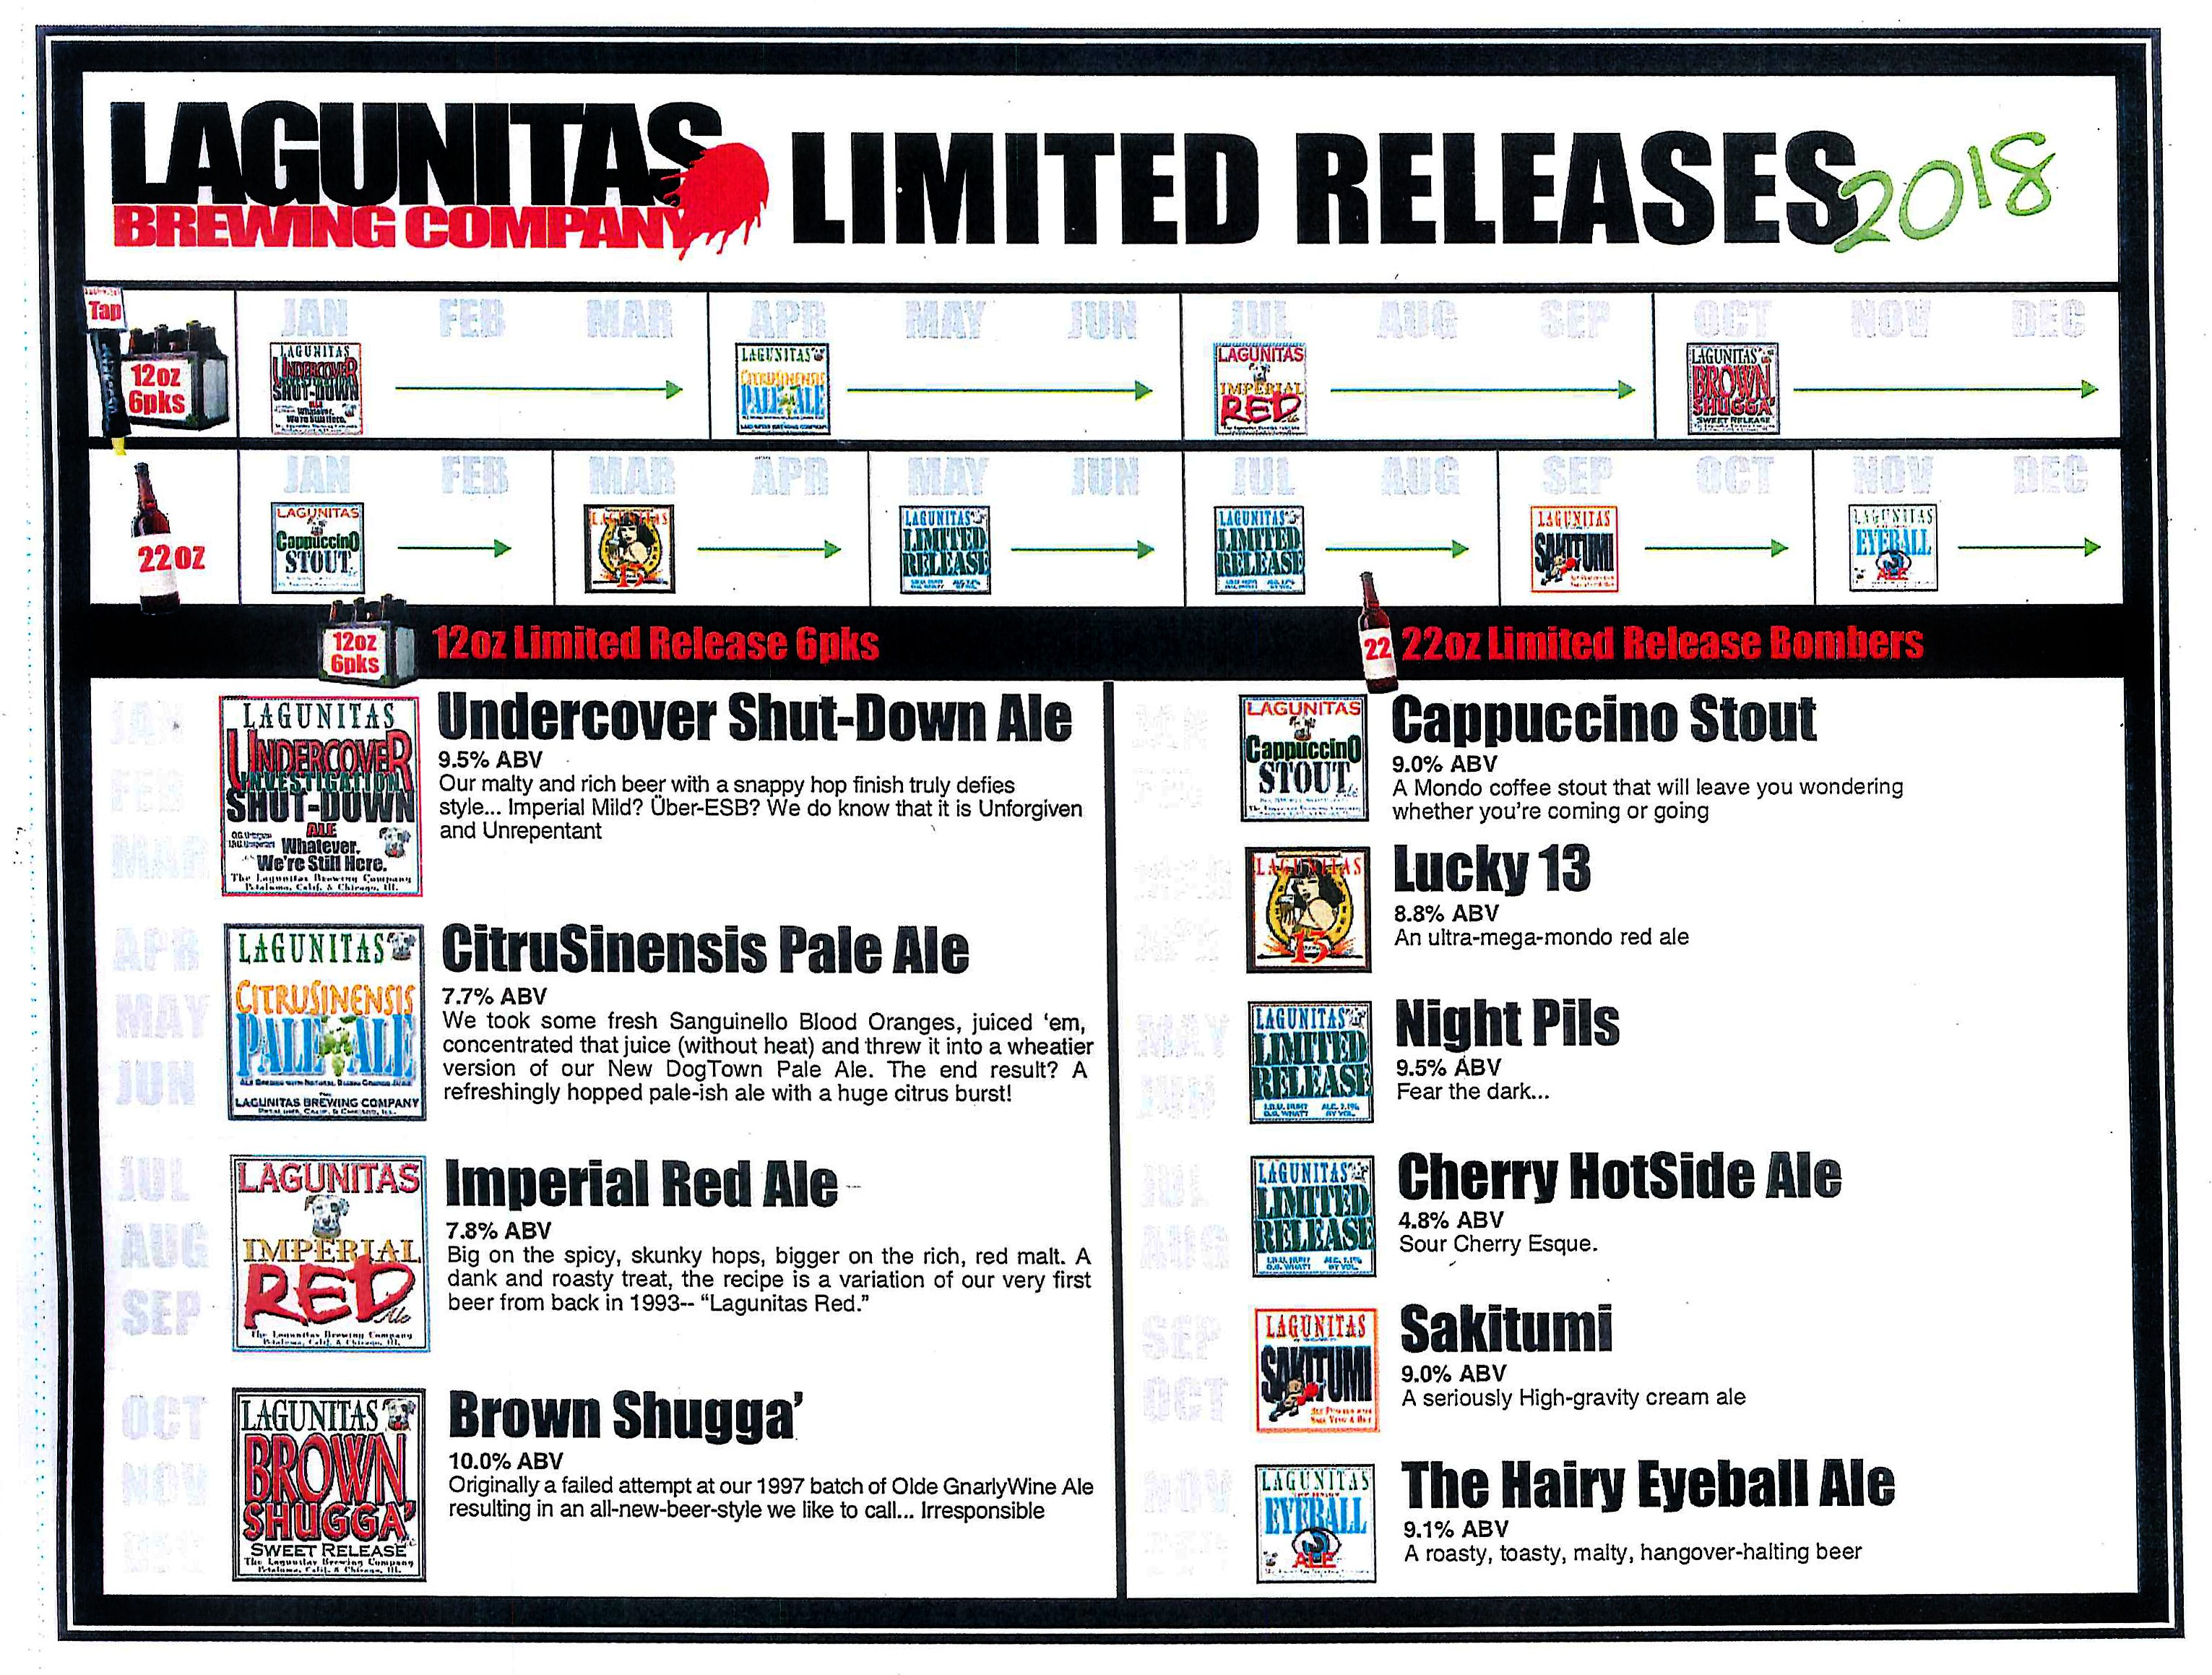 March Calendar Blank 2019 Más Recientes Lagunitas Announces 2018 Release Calendar Willitized Coffee Stout Of March Calendar Blank 2019 Más Recientemente Liberado Art Prints Lunar Calendar 2019